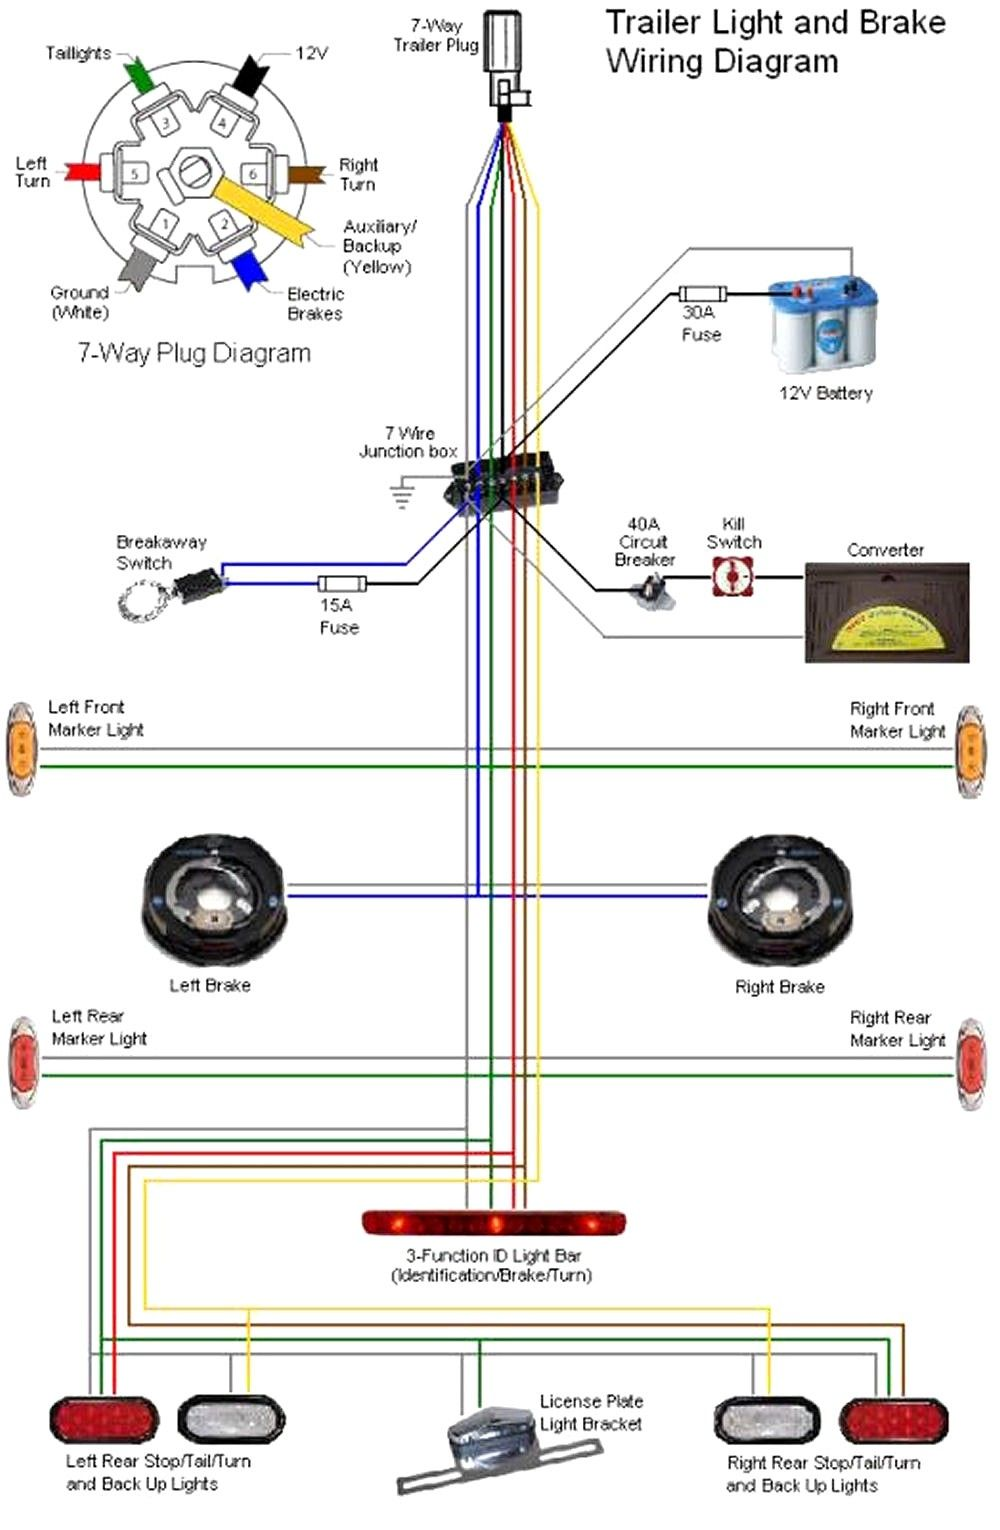 Chevy 7 Pin Trailer Wiring Diagram Sources Trailer Light Wiring Utility Trailer Trailer Wiring Diagram